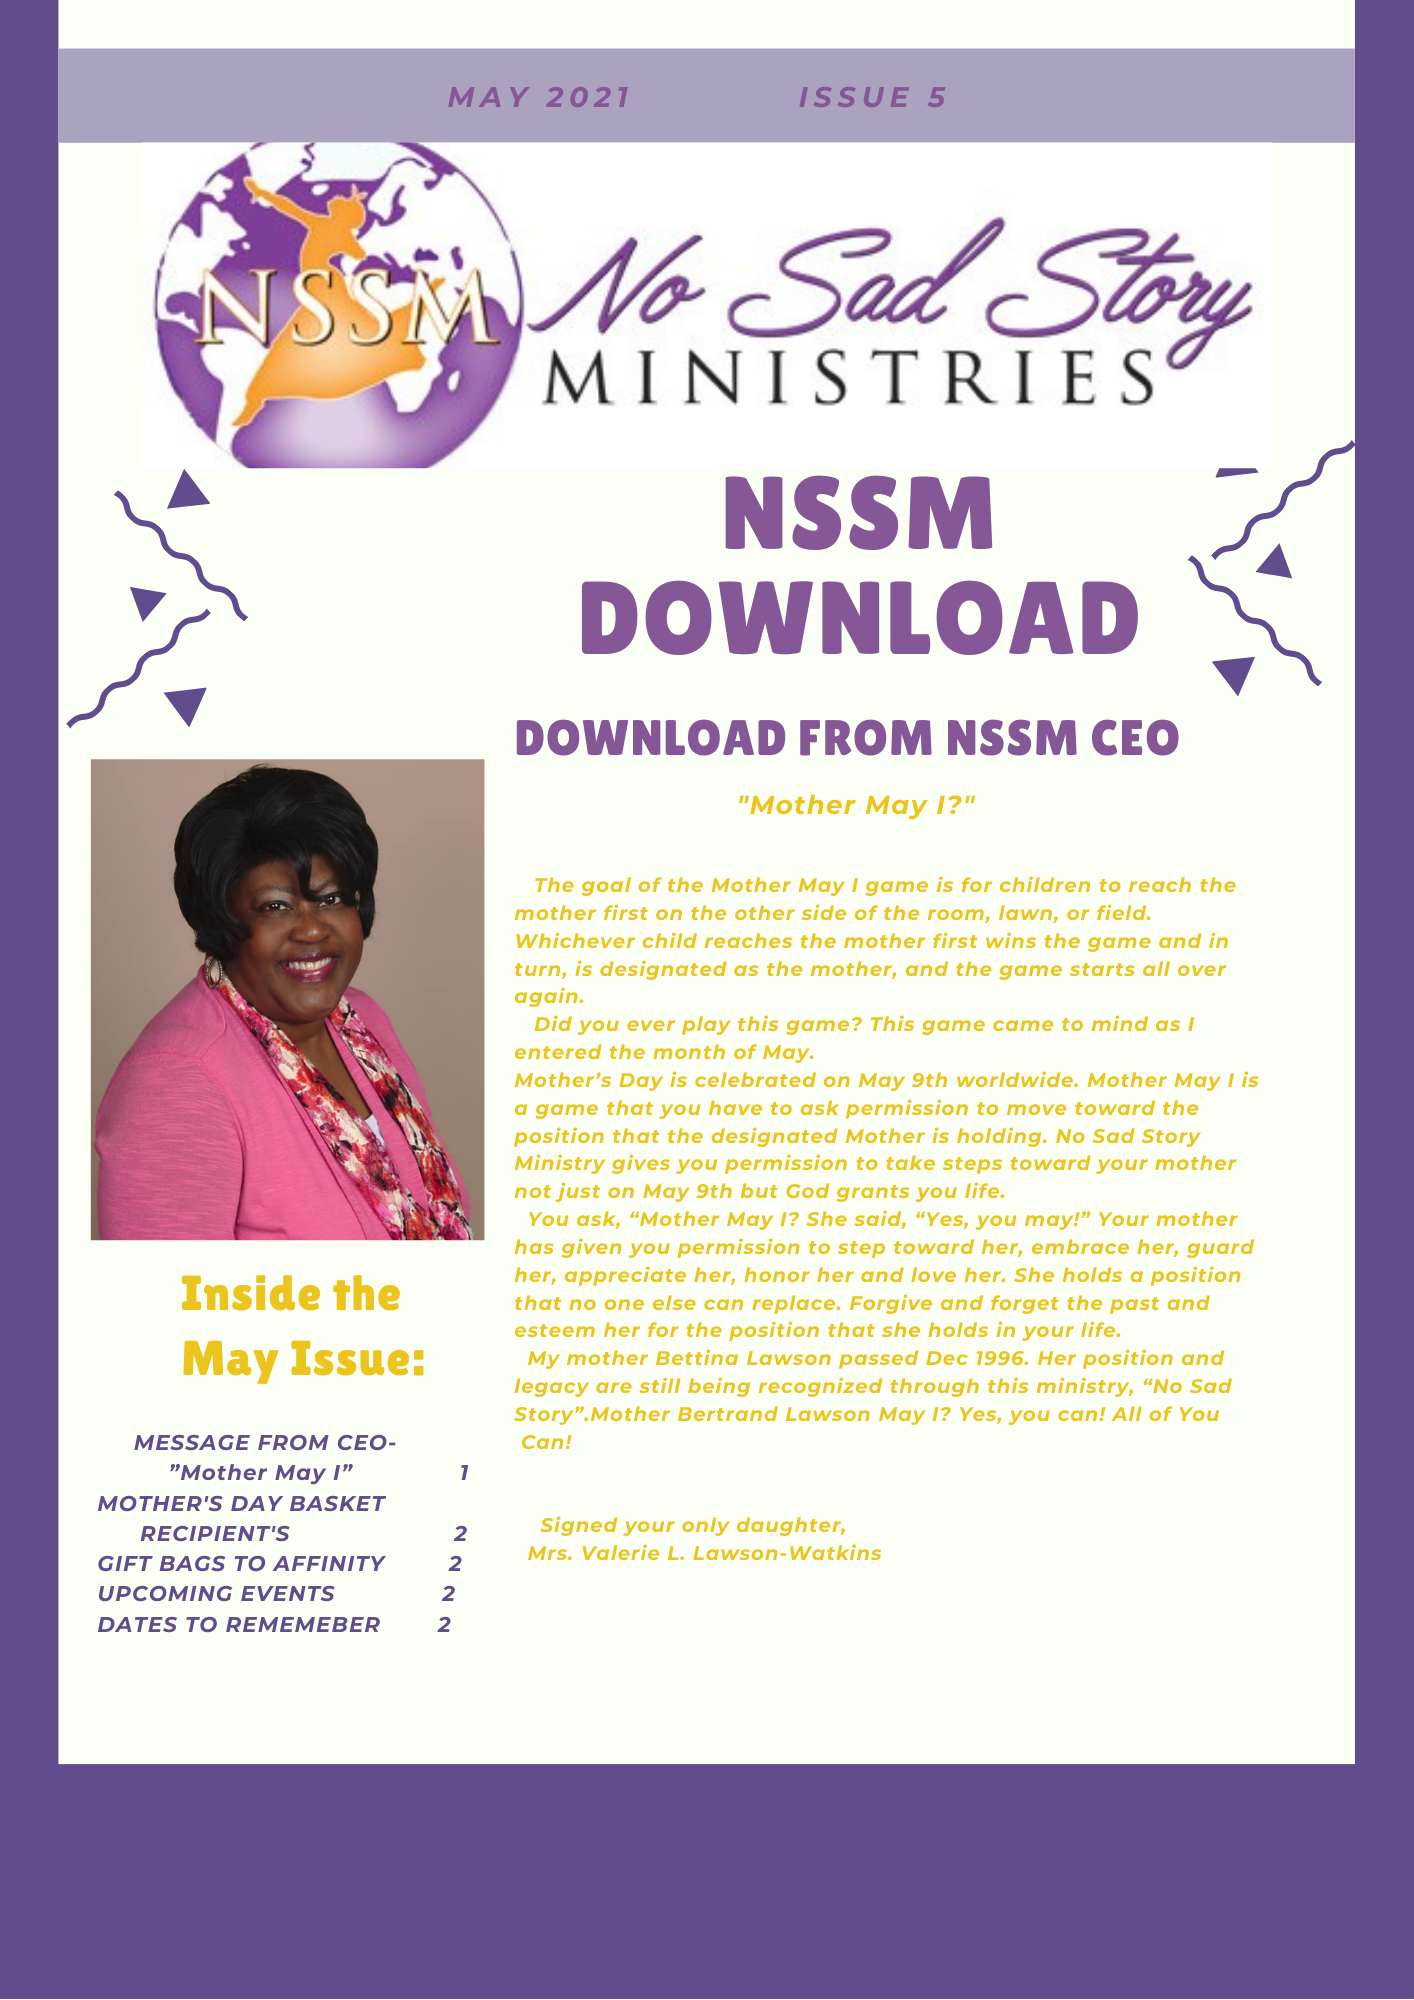 May 2021 Newsletter Page 1 of 2